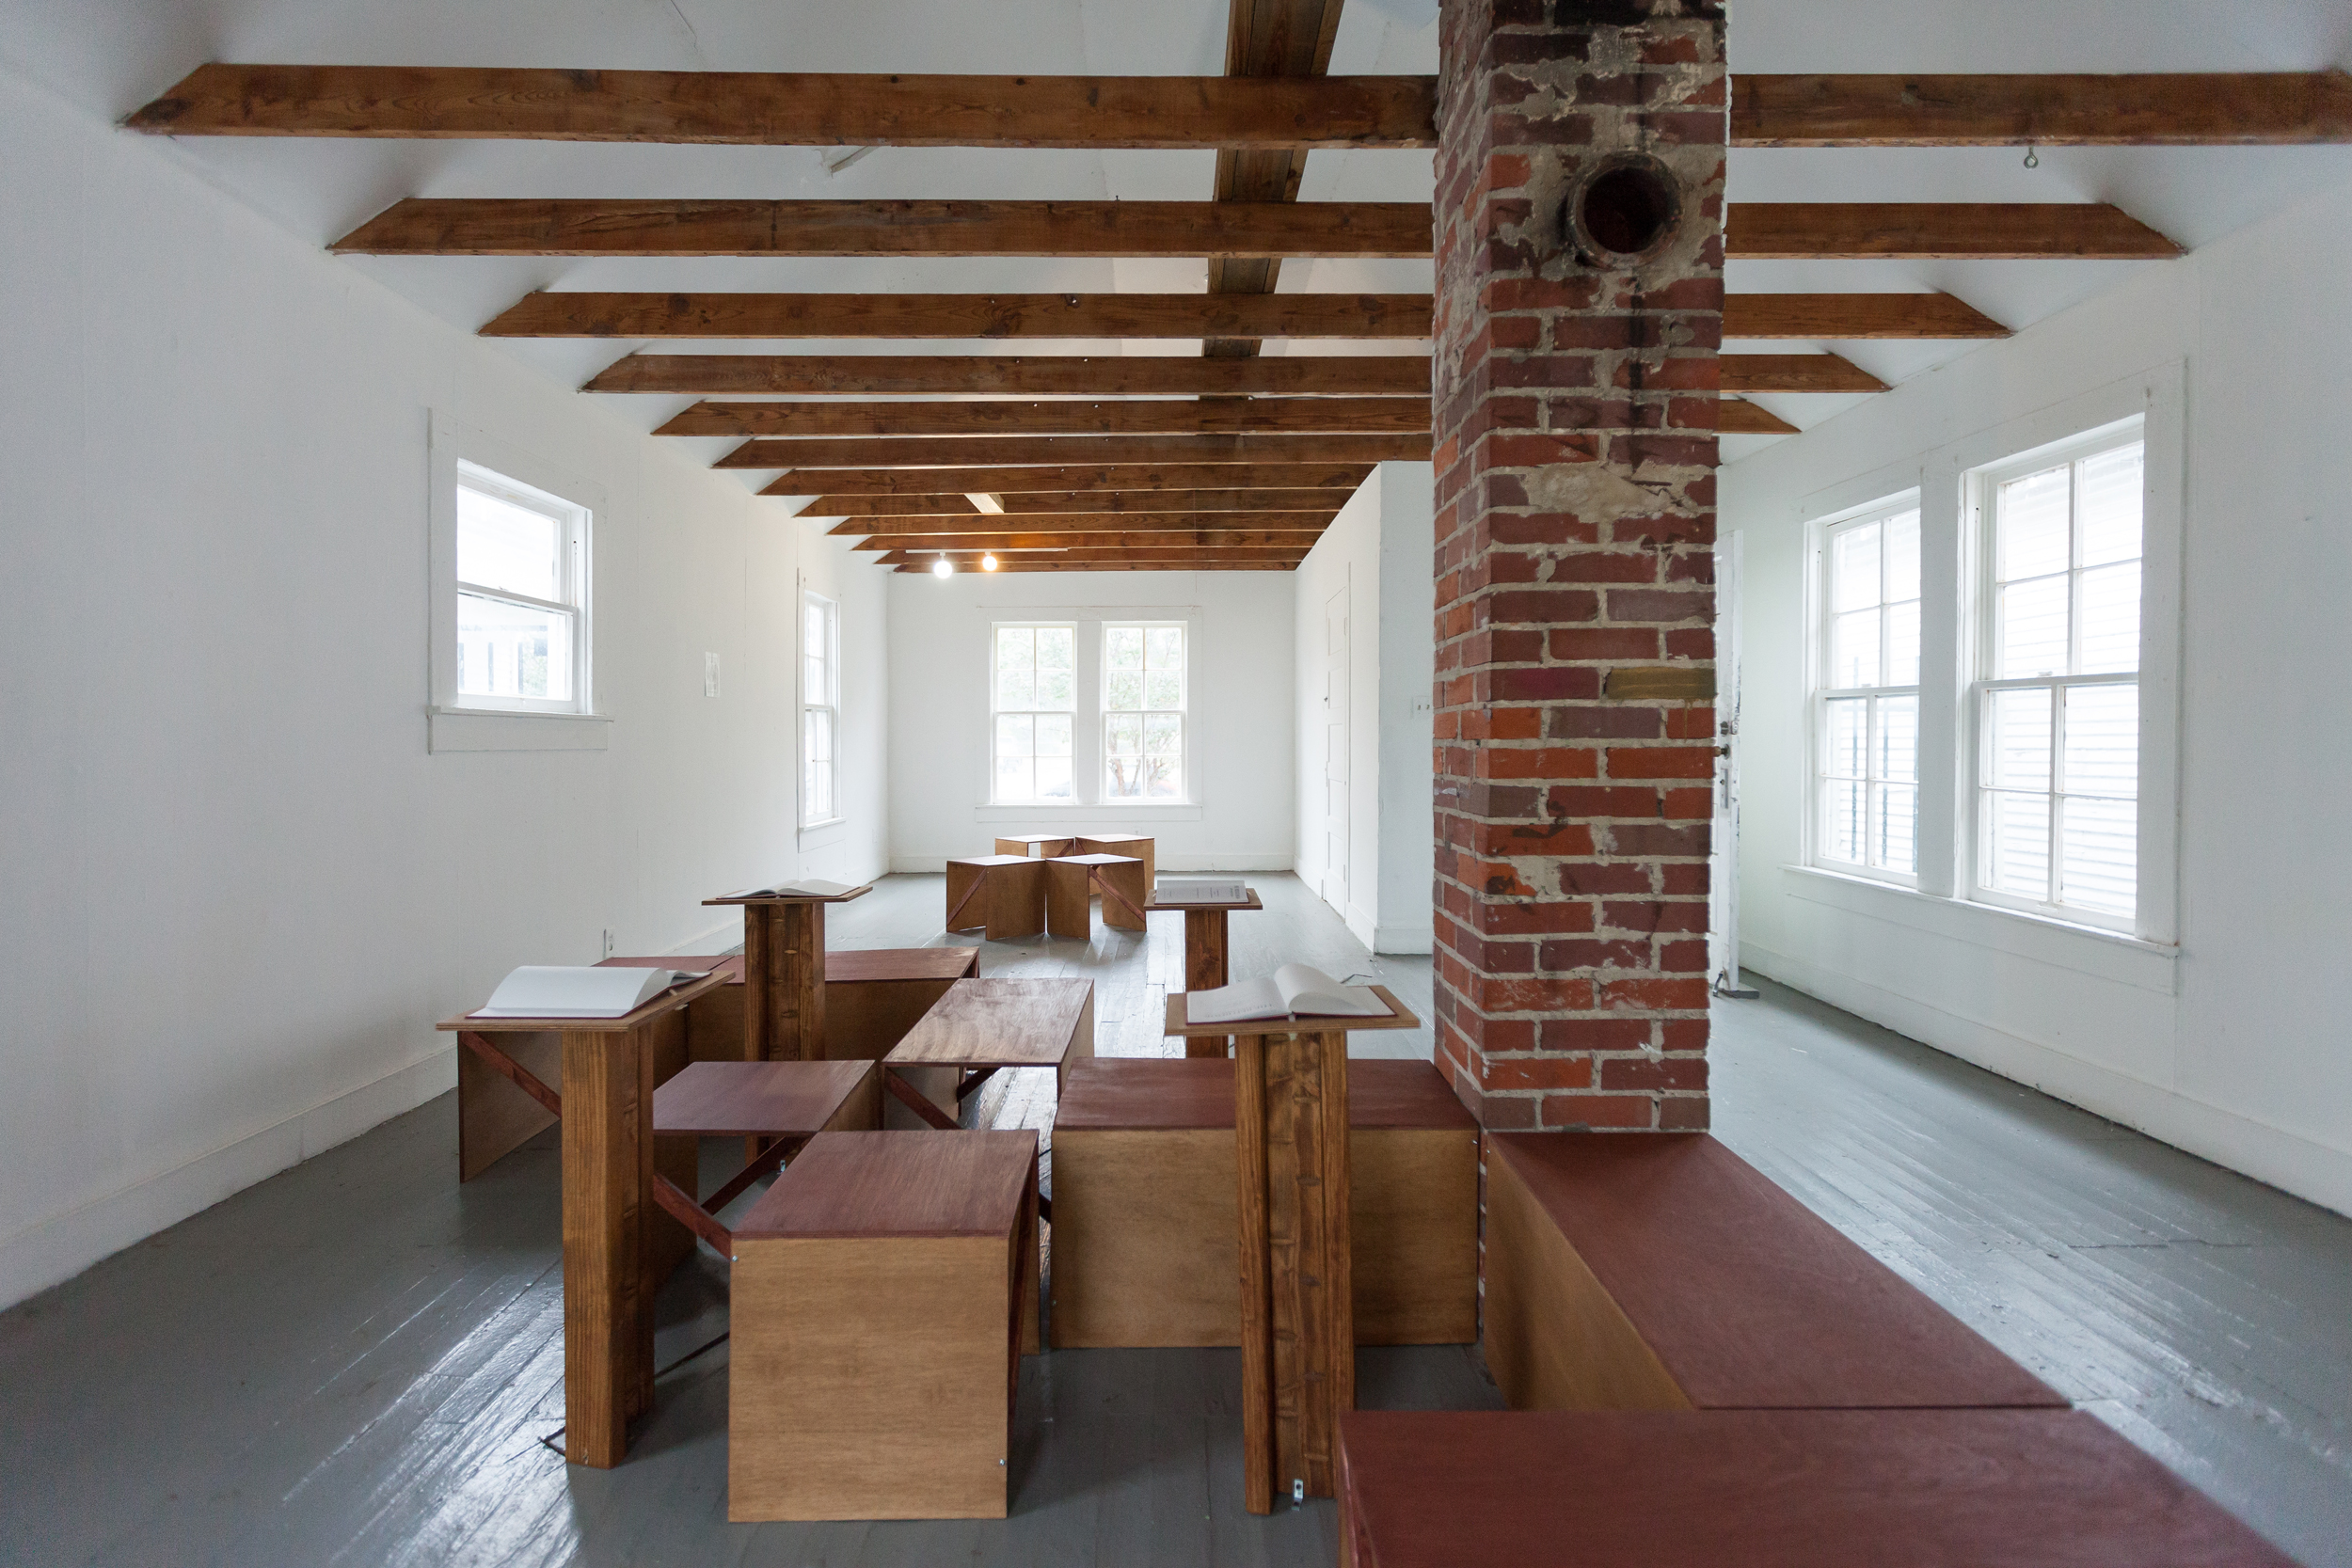 2015   In collaboration with Robert Anthony Weston Sr.   Hand built wooden benches and podiums, limited edition books of experimental text and poetry.  Project Row Houses.  photo credits: Alex Barber